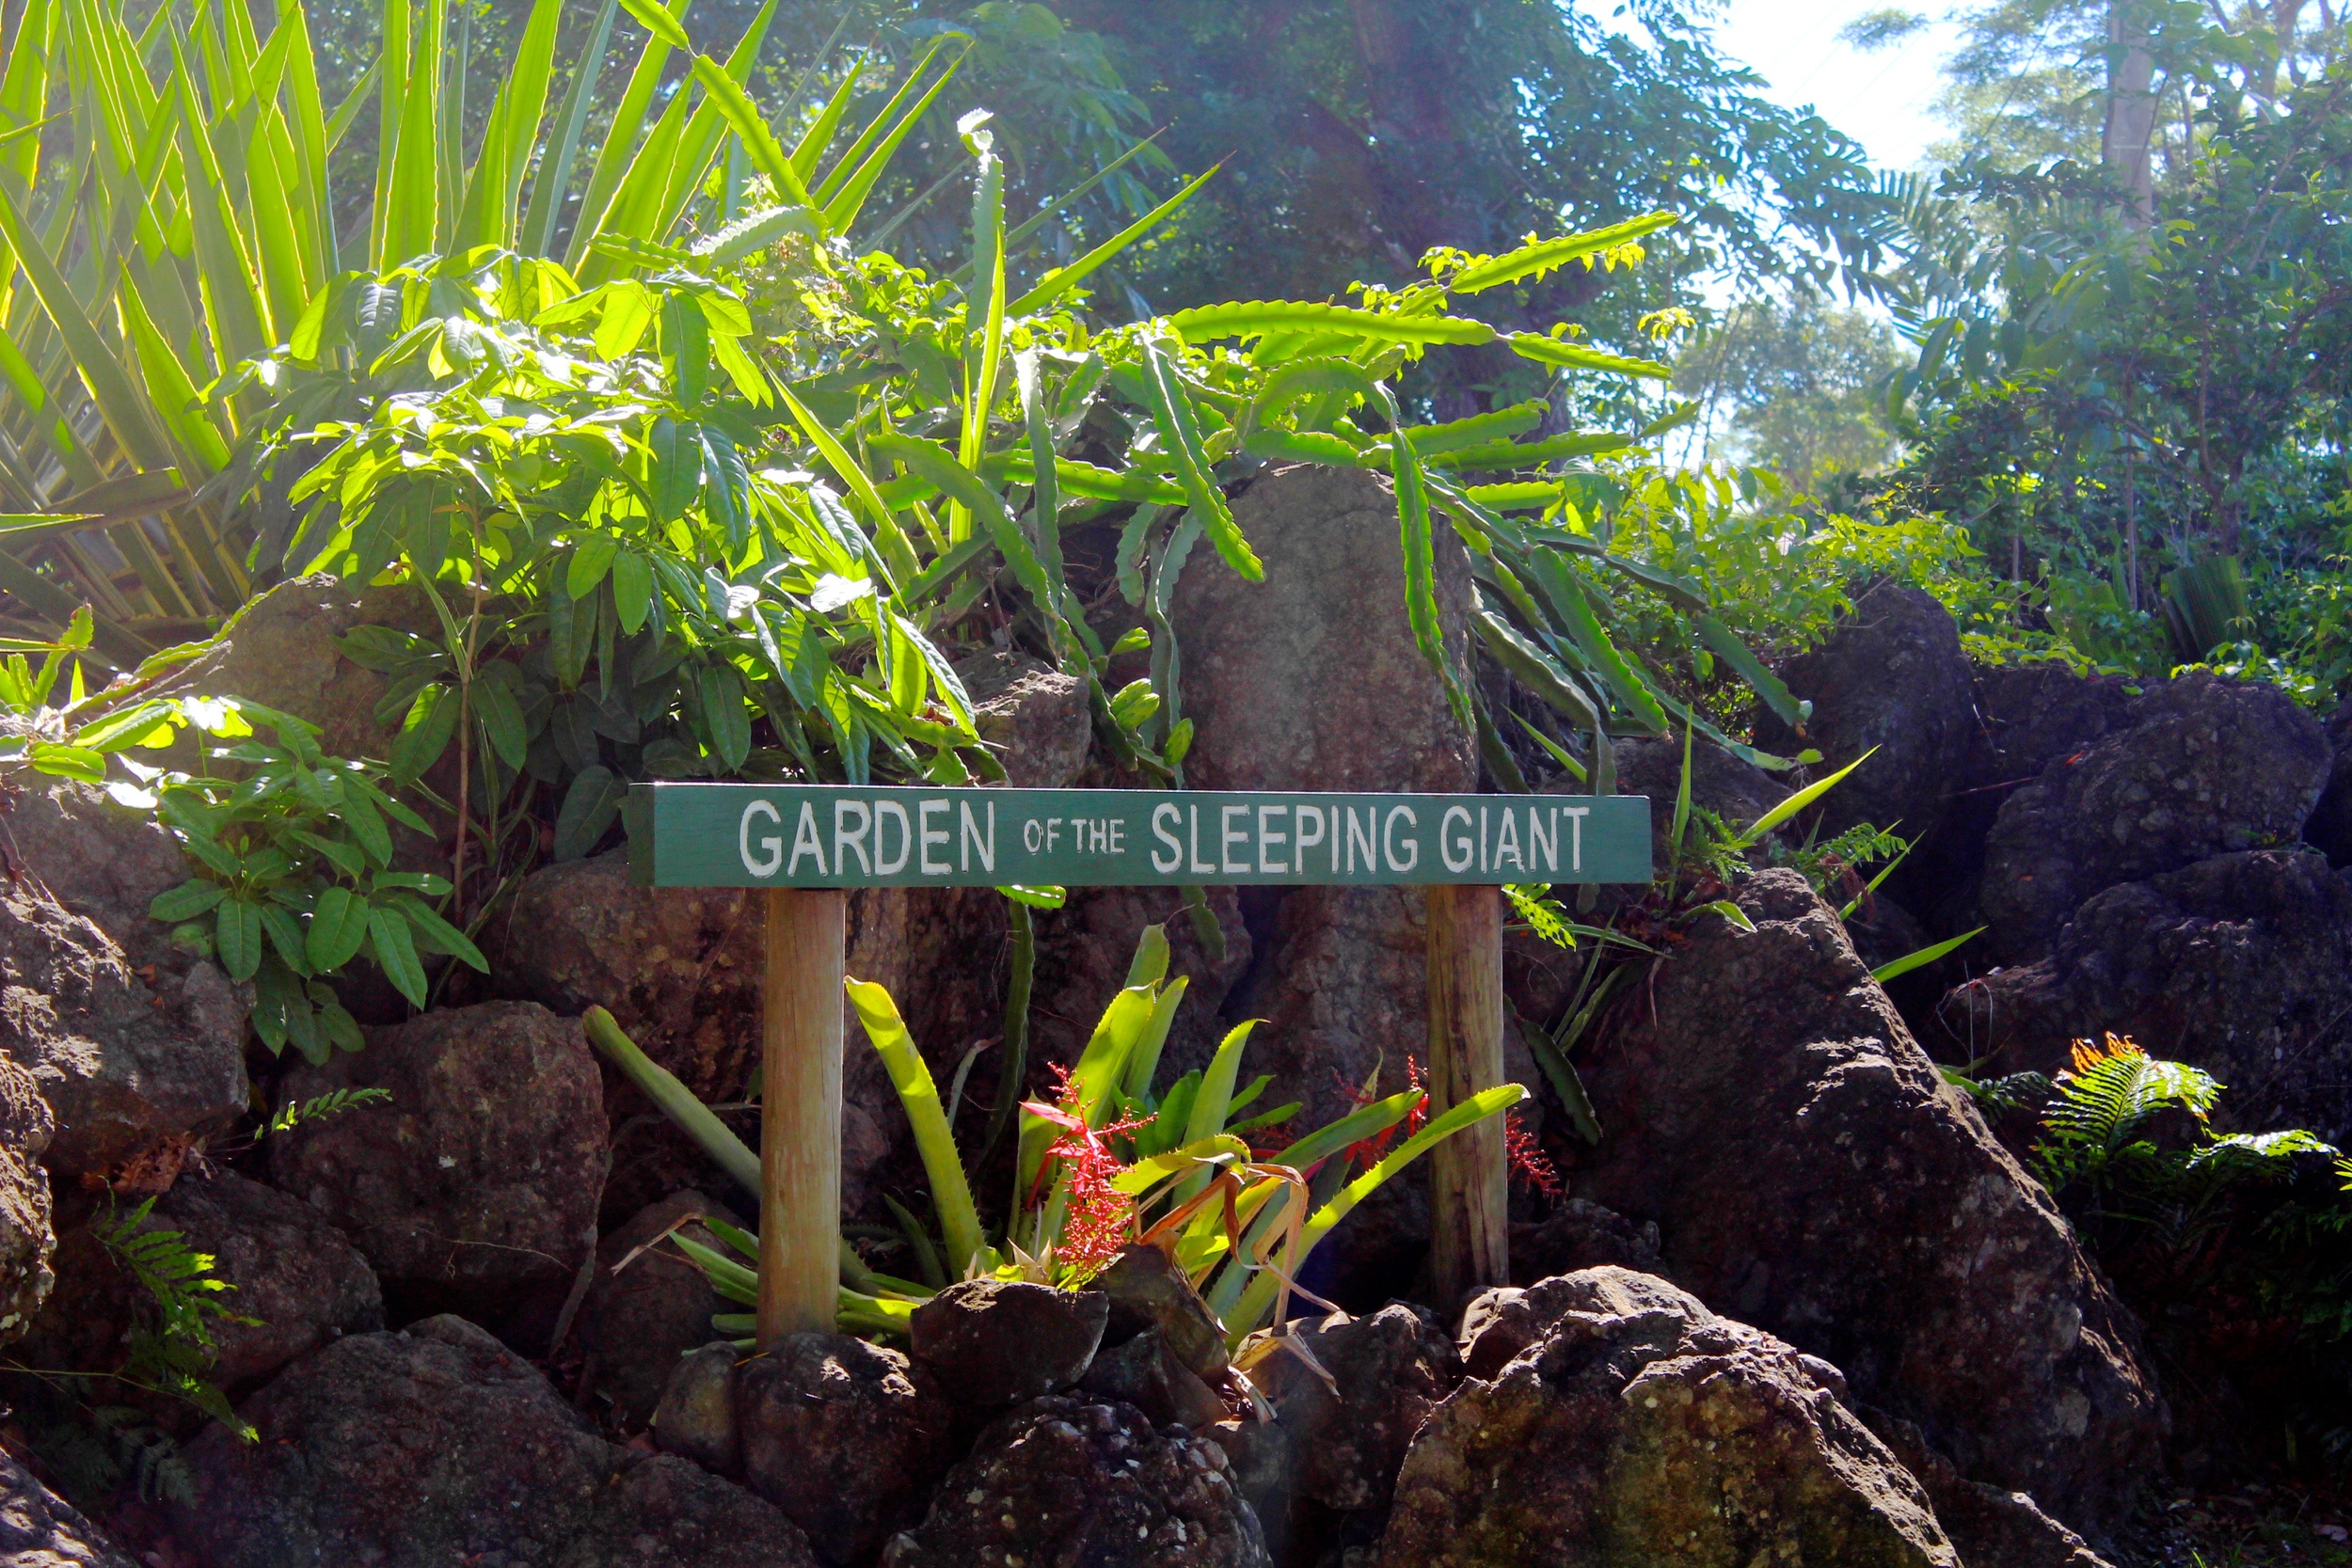 Garden of the Sleeping Giant